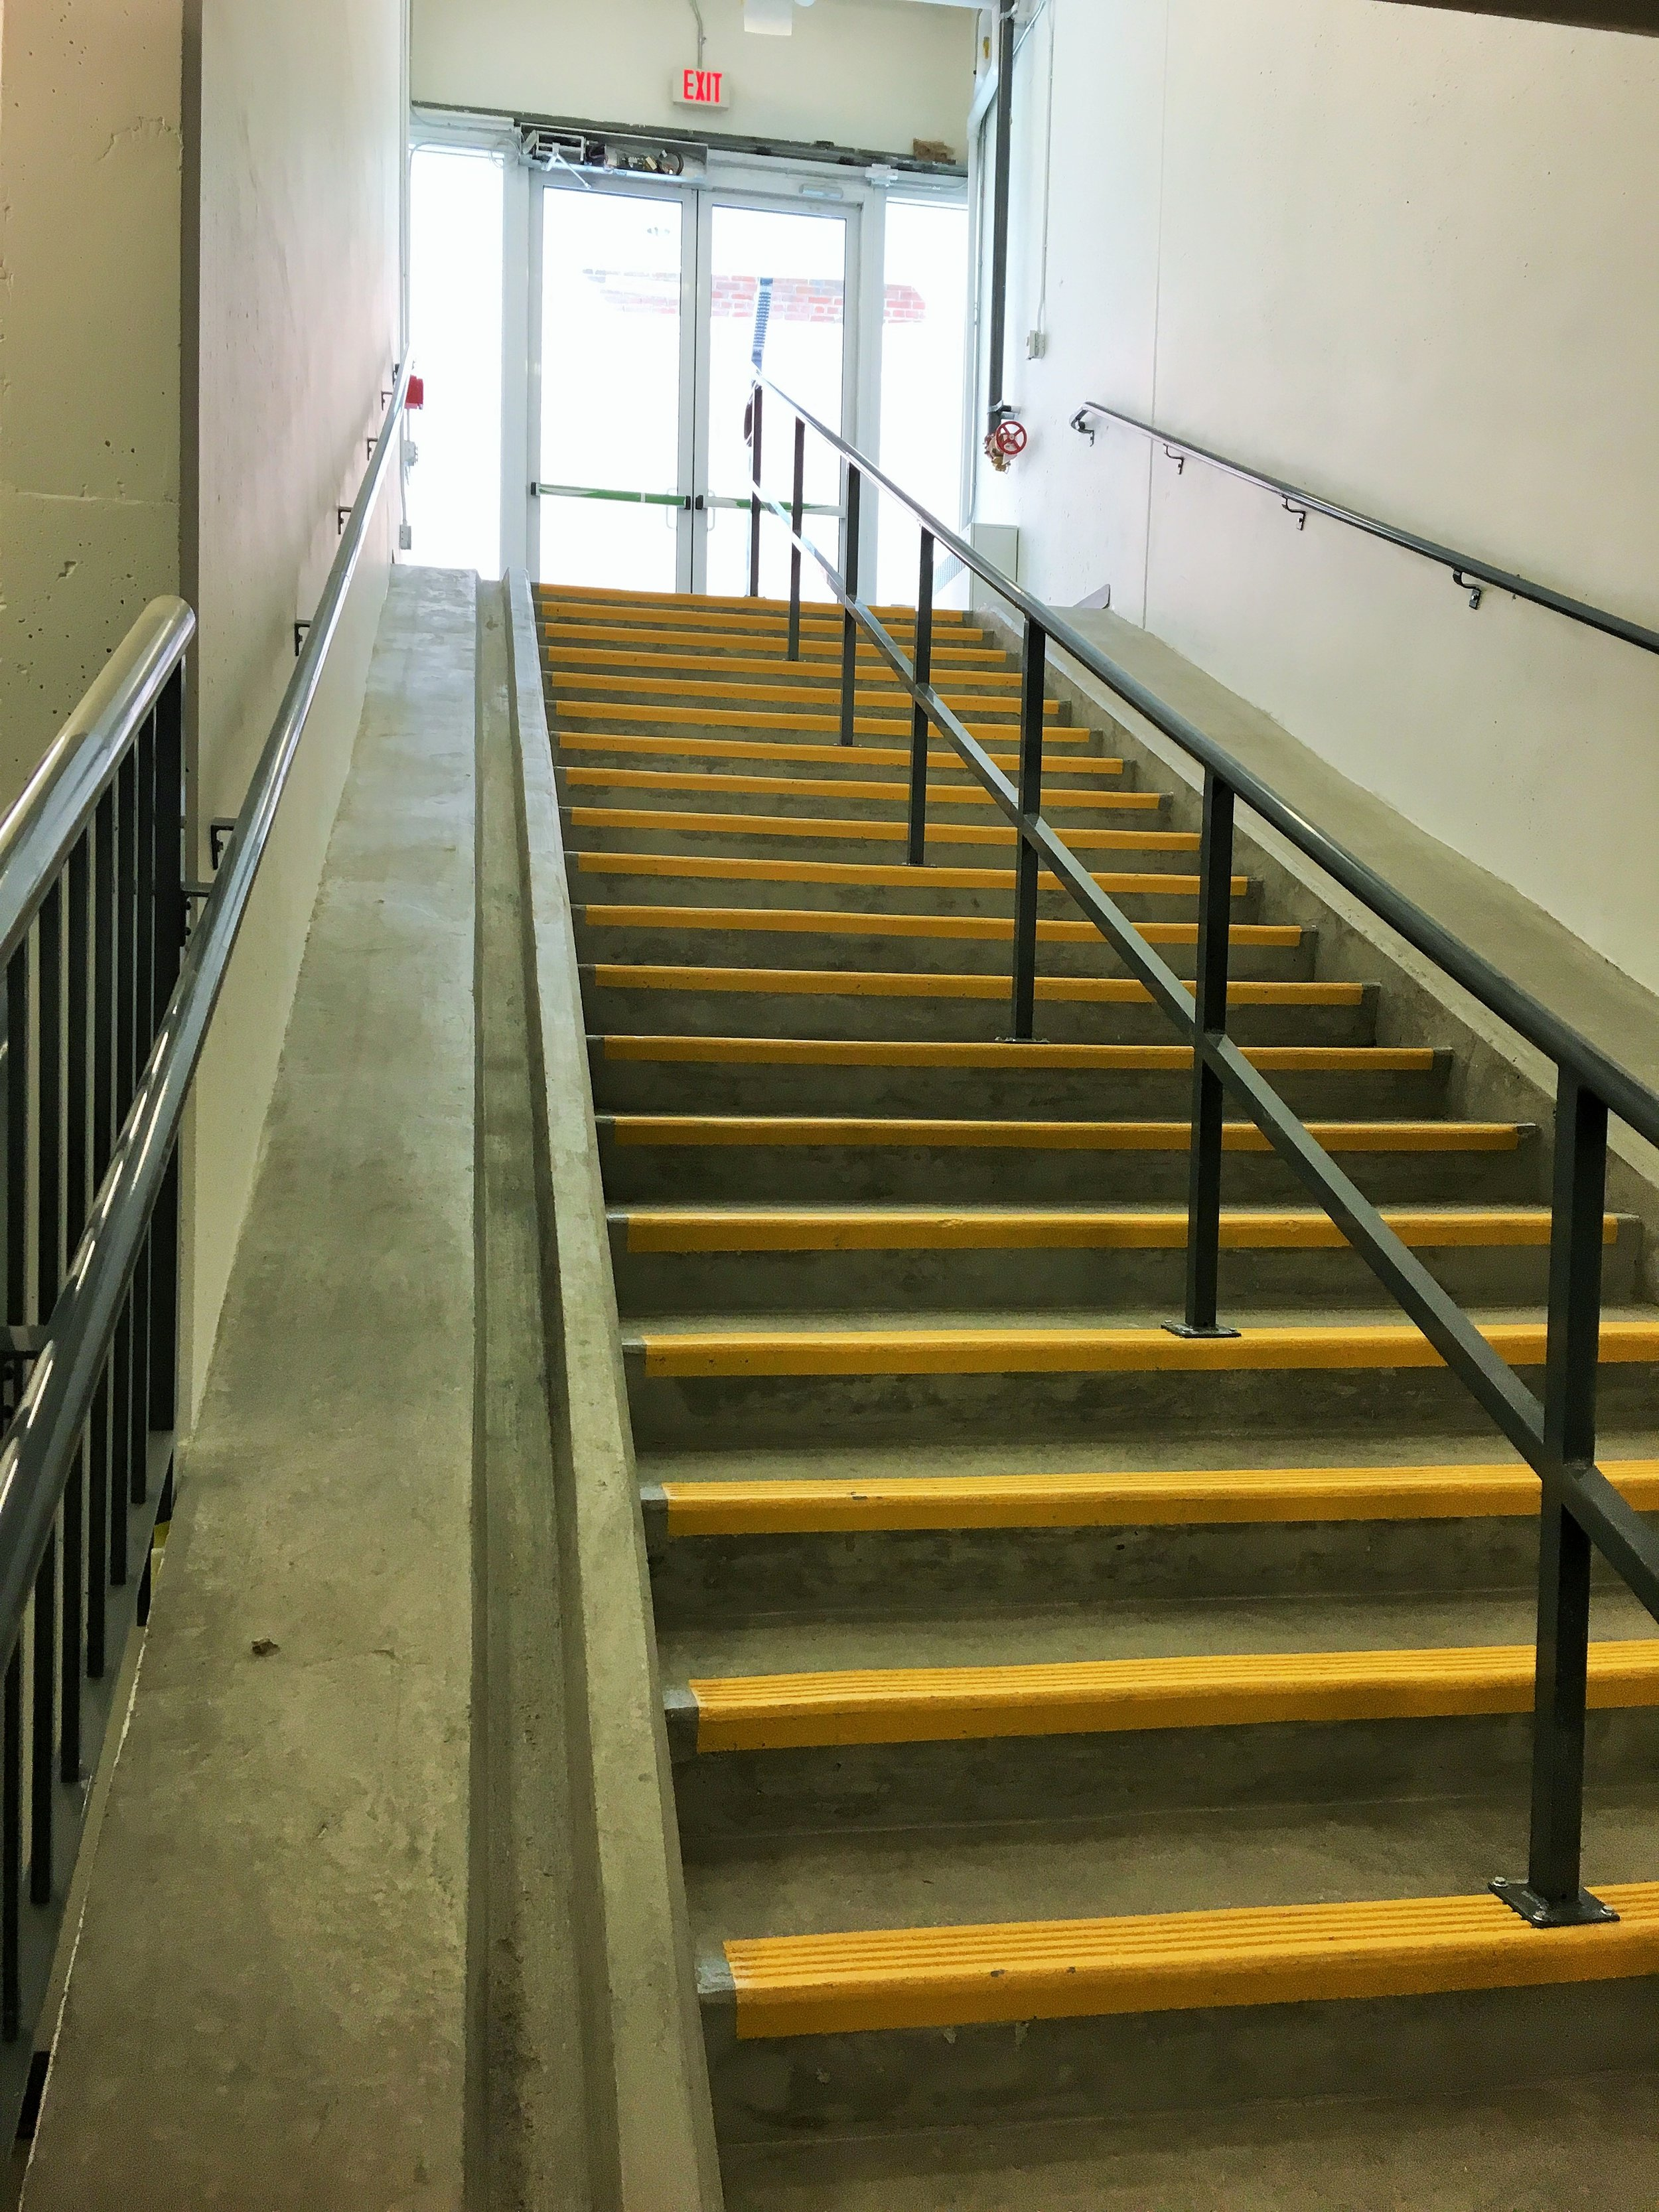 Bike ramps make it easy to bring your 2-wheeler into bike parking downstairs.